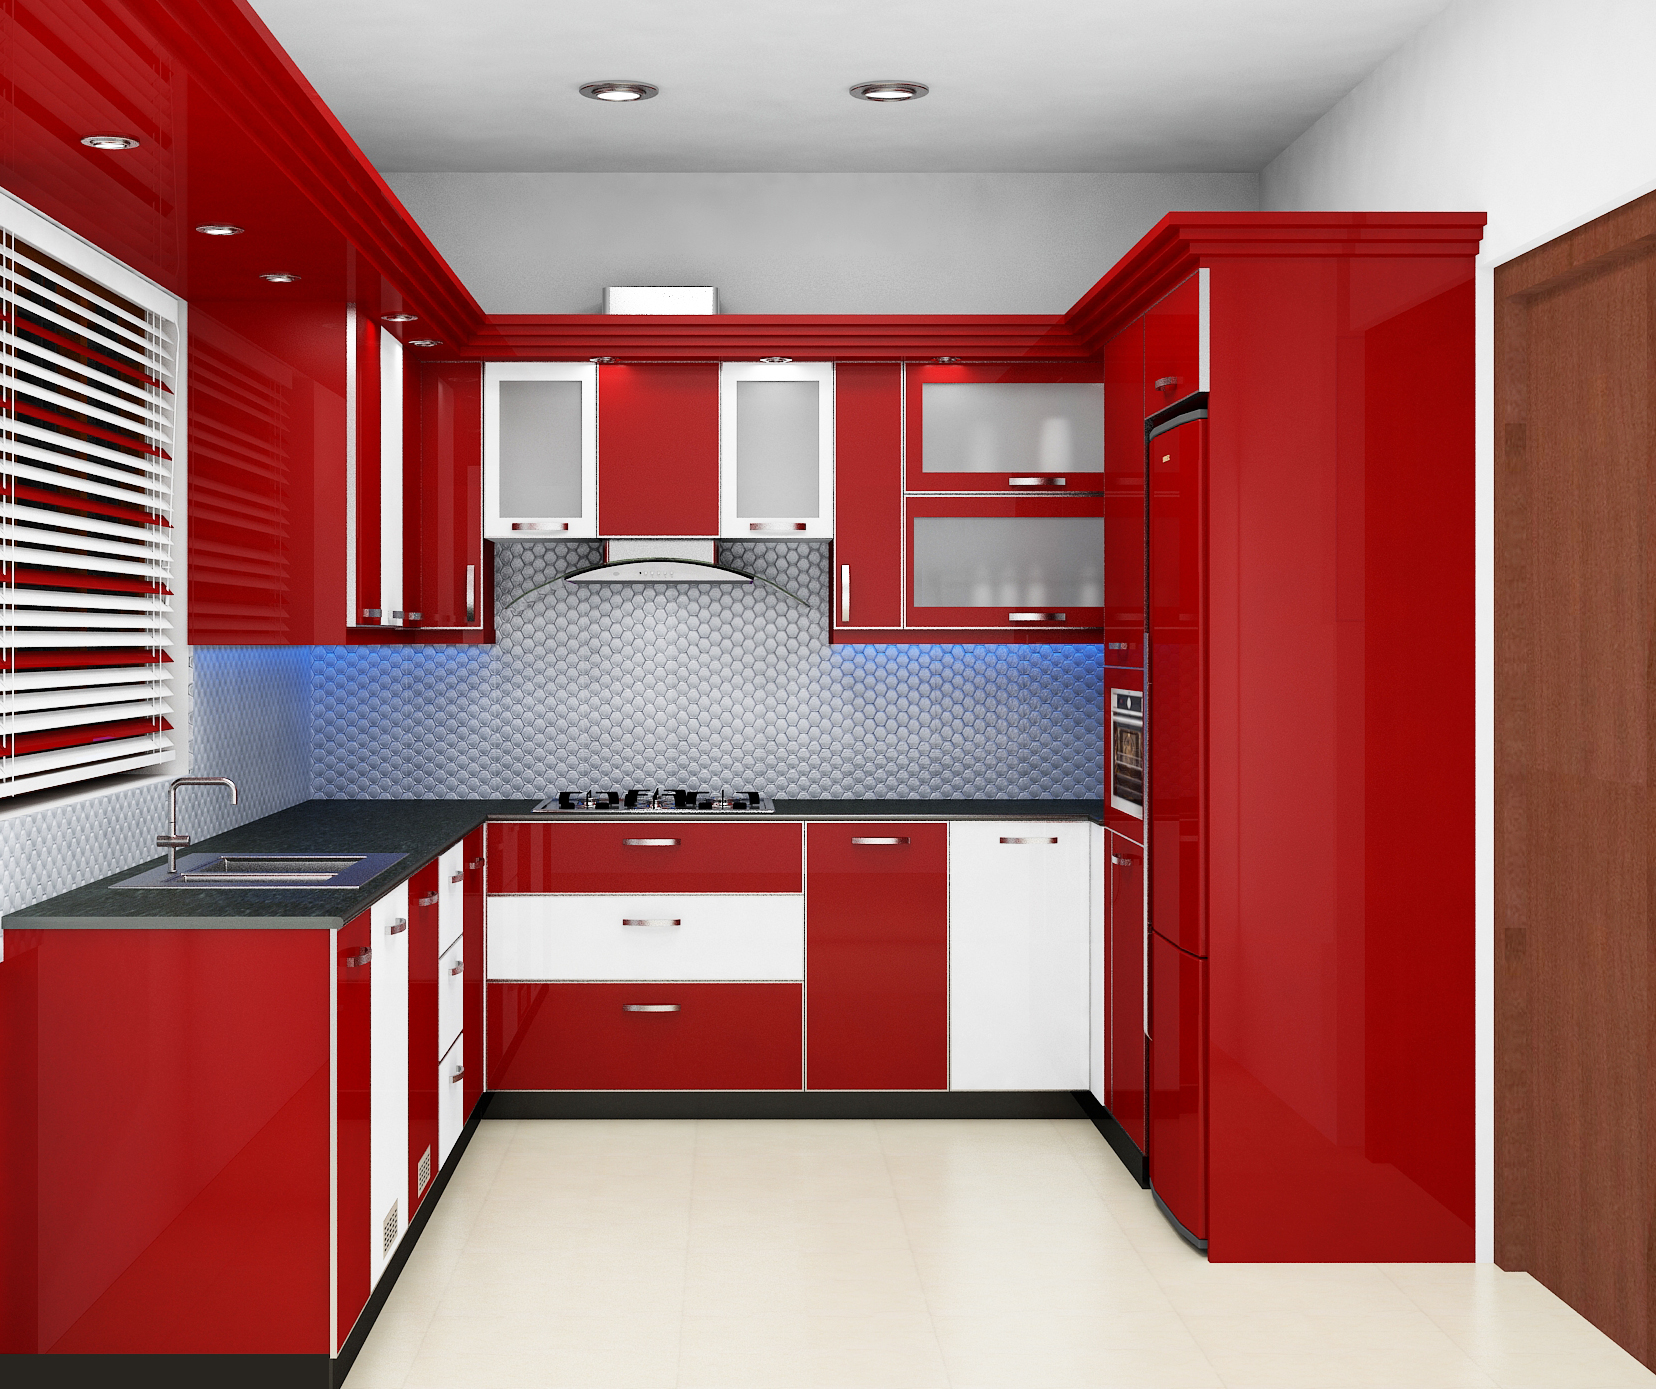 Exemplary and amazing modular kitchen home interior design for Amazing interior design ideas